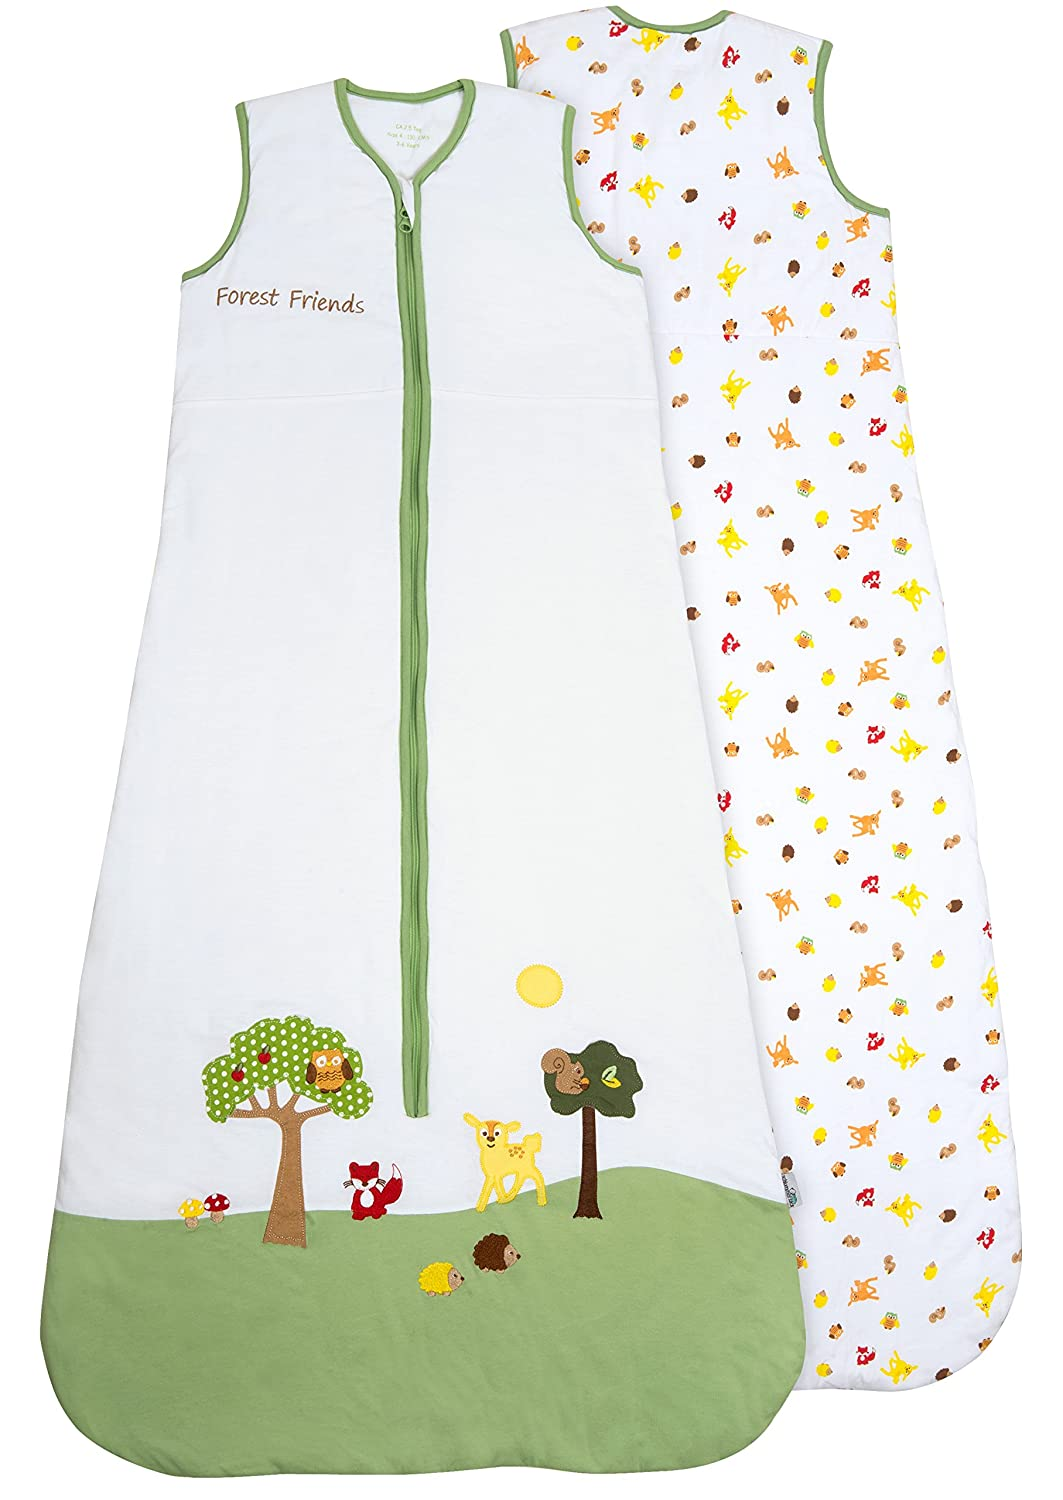 Slumbersafe Summer Toddler Sleeping Bag 1 Tog - Forest Friends, 18-36 months/LARGE